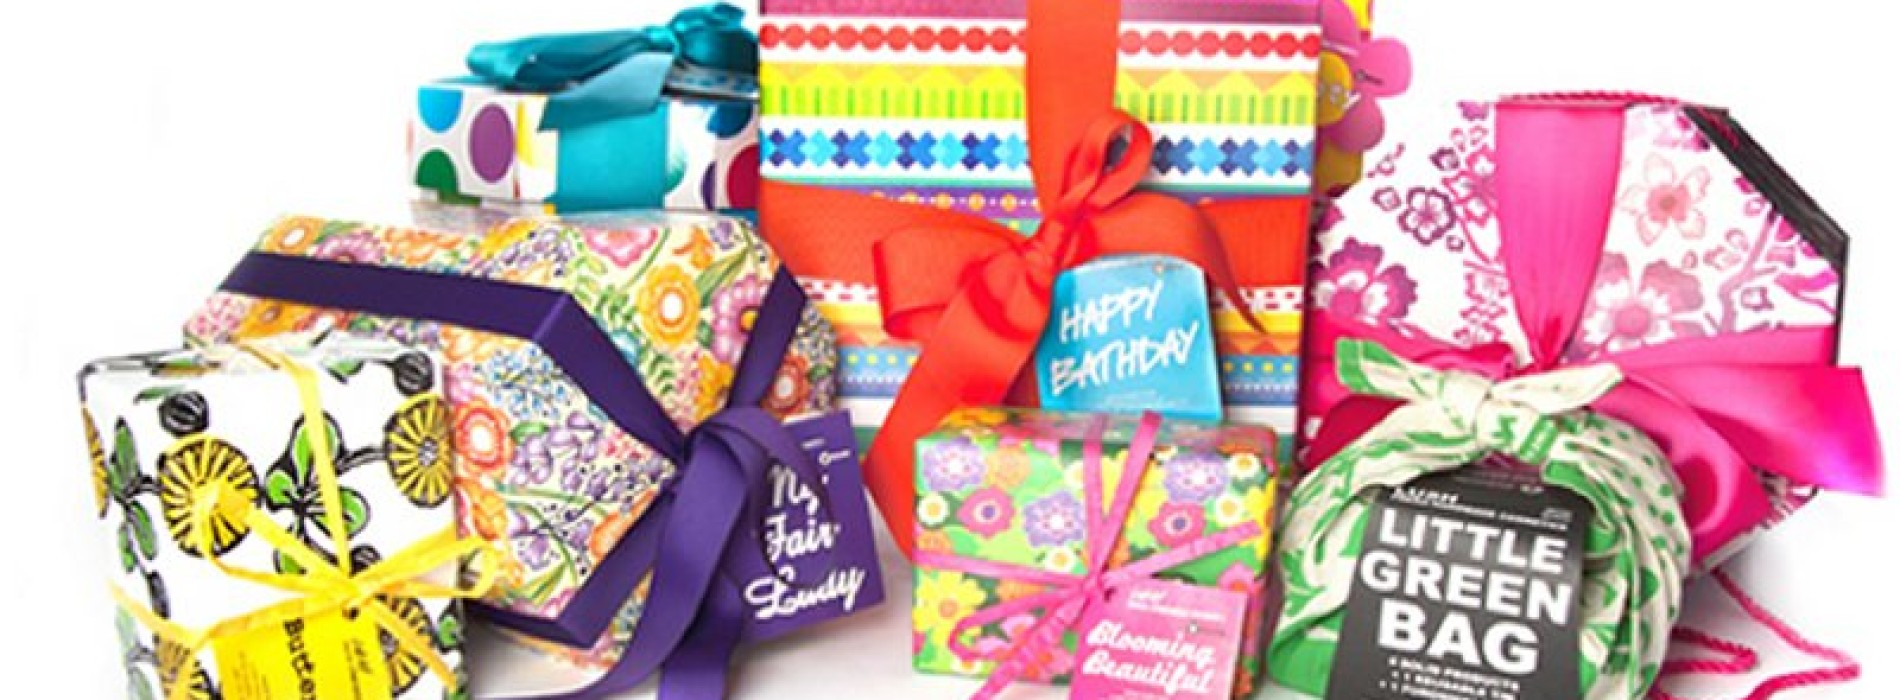 Easter holiday competition: win a Lush gift set worth £24.95